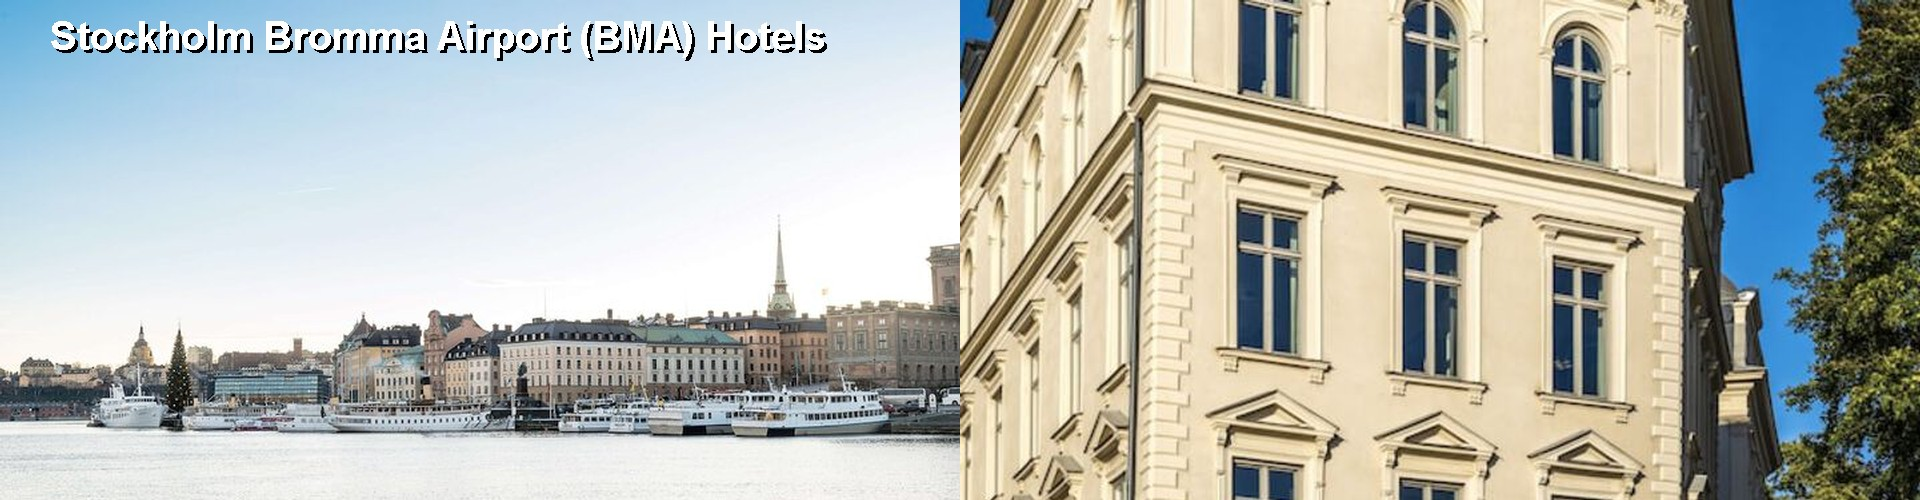 5 Best Hotels near Stockholm Bromma Airport (BMA)